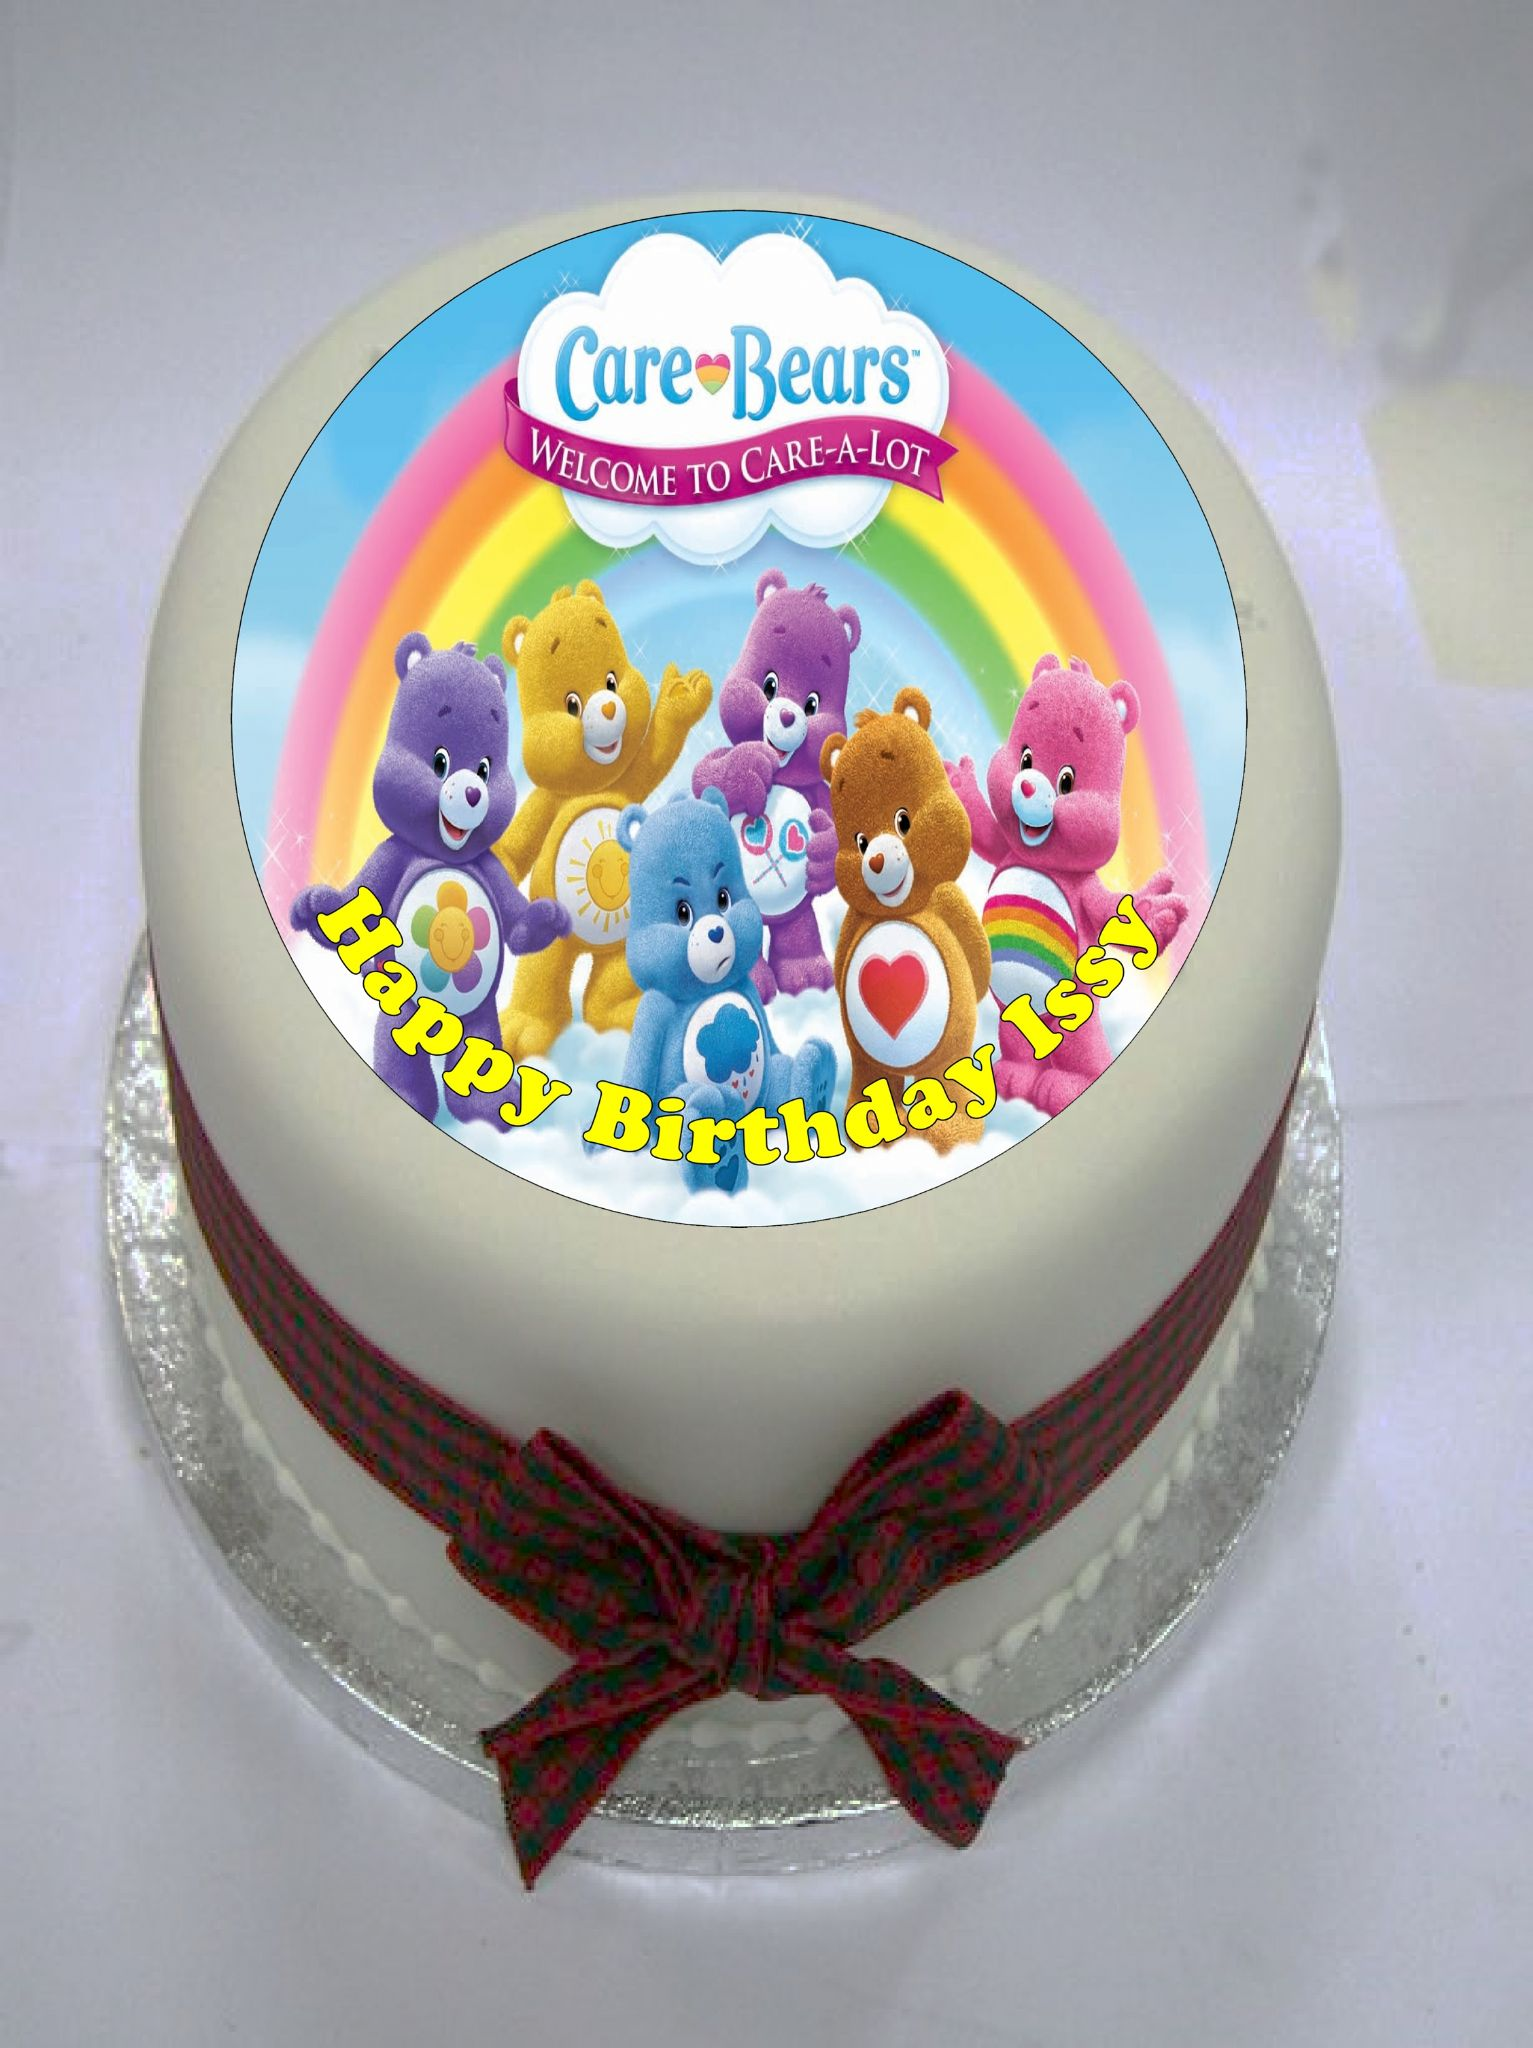 Cake Toppers Edible Uk : Care Bears Edible Cake Topper